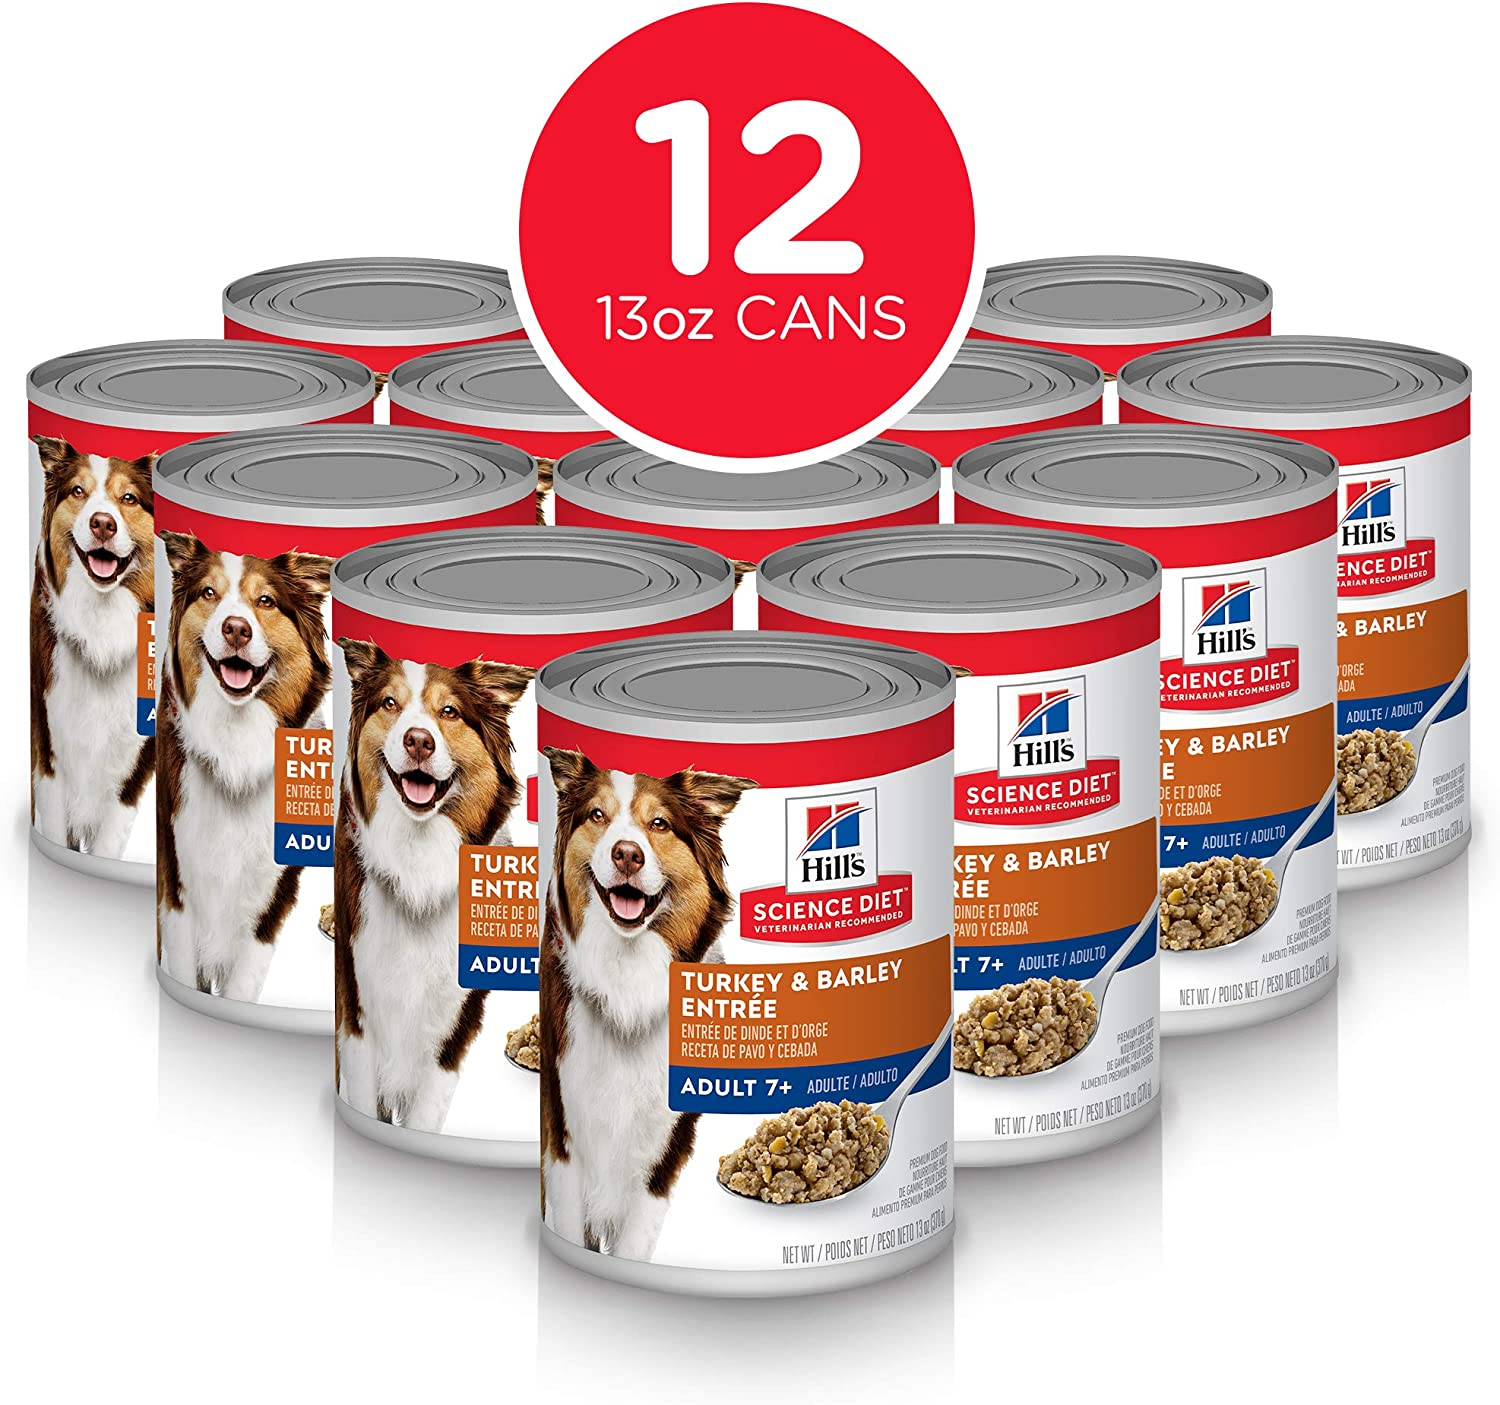 4. Hill's Science Diet Adult 7+ Canned Dog Food